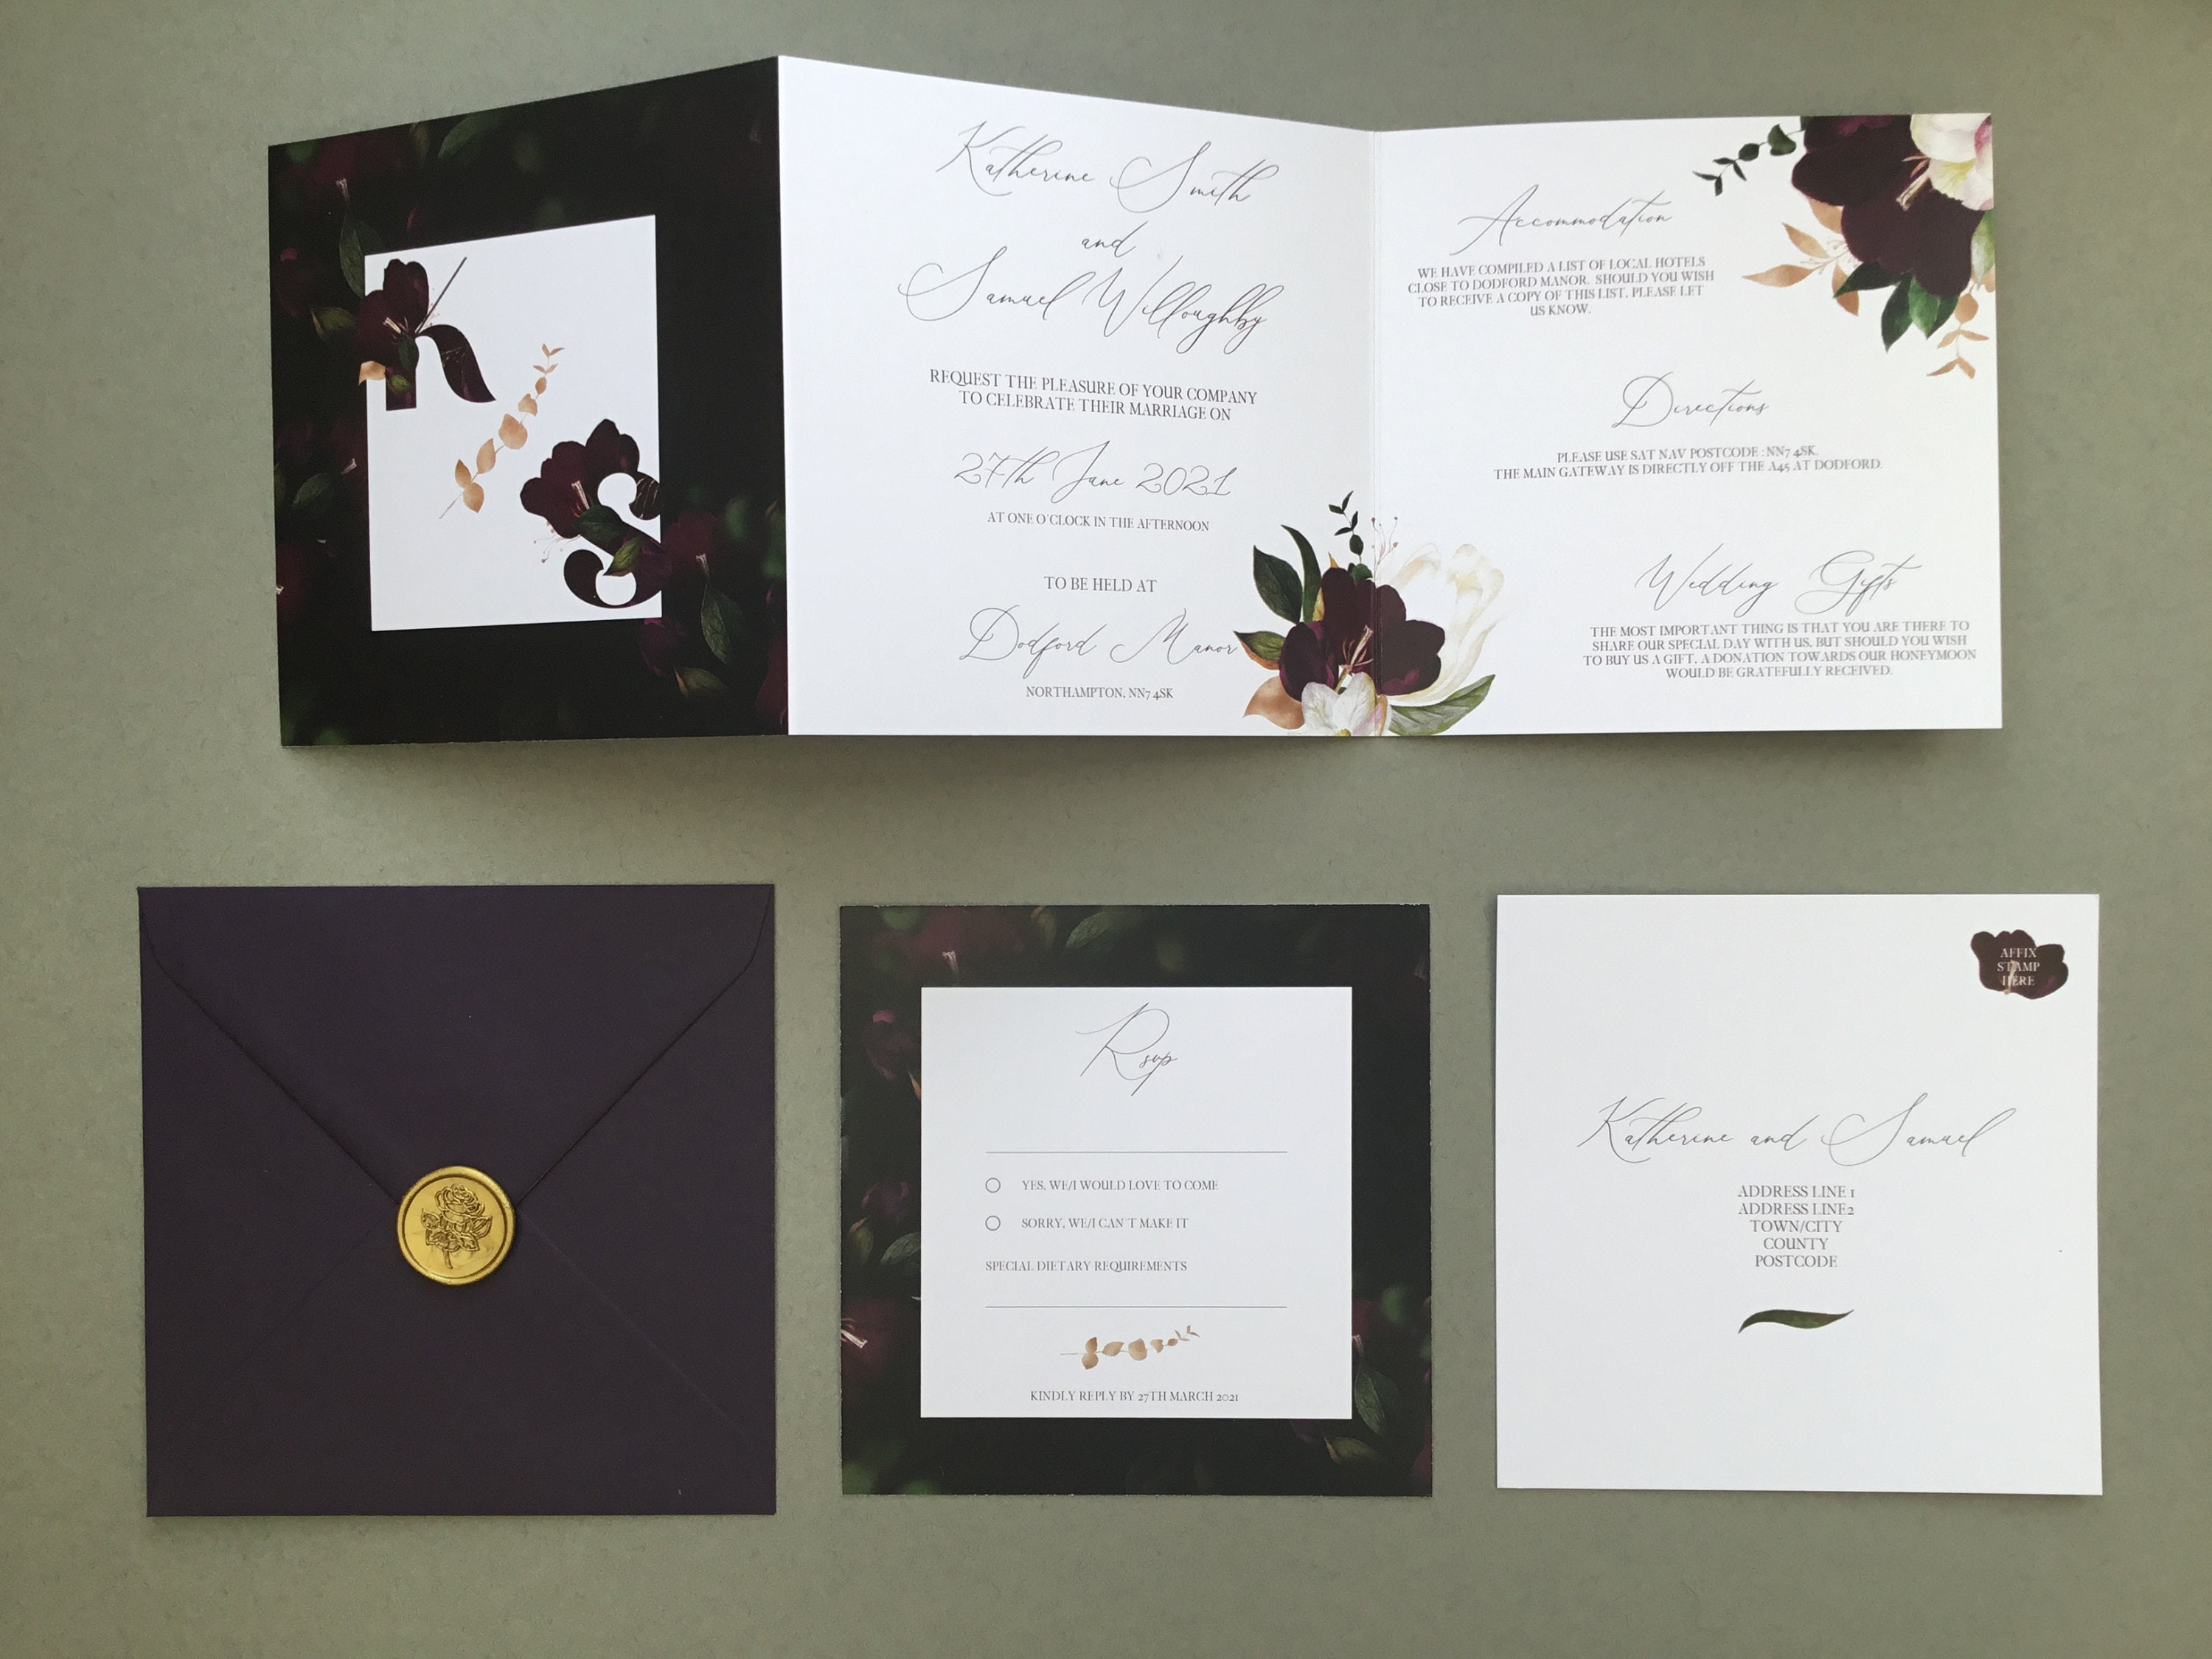 Velvet Kiss - Luxury Square Concertina Wedding Invitation, Wedding  Stationery & Save The Date  Purple/Plum Floral Design With Gold Elements